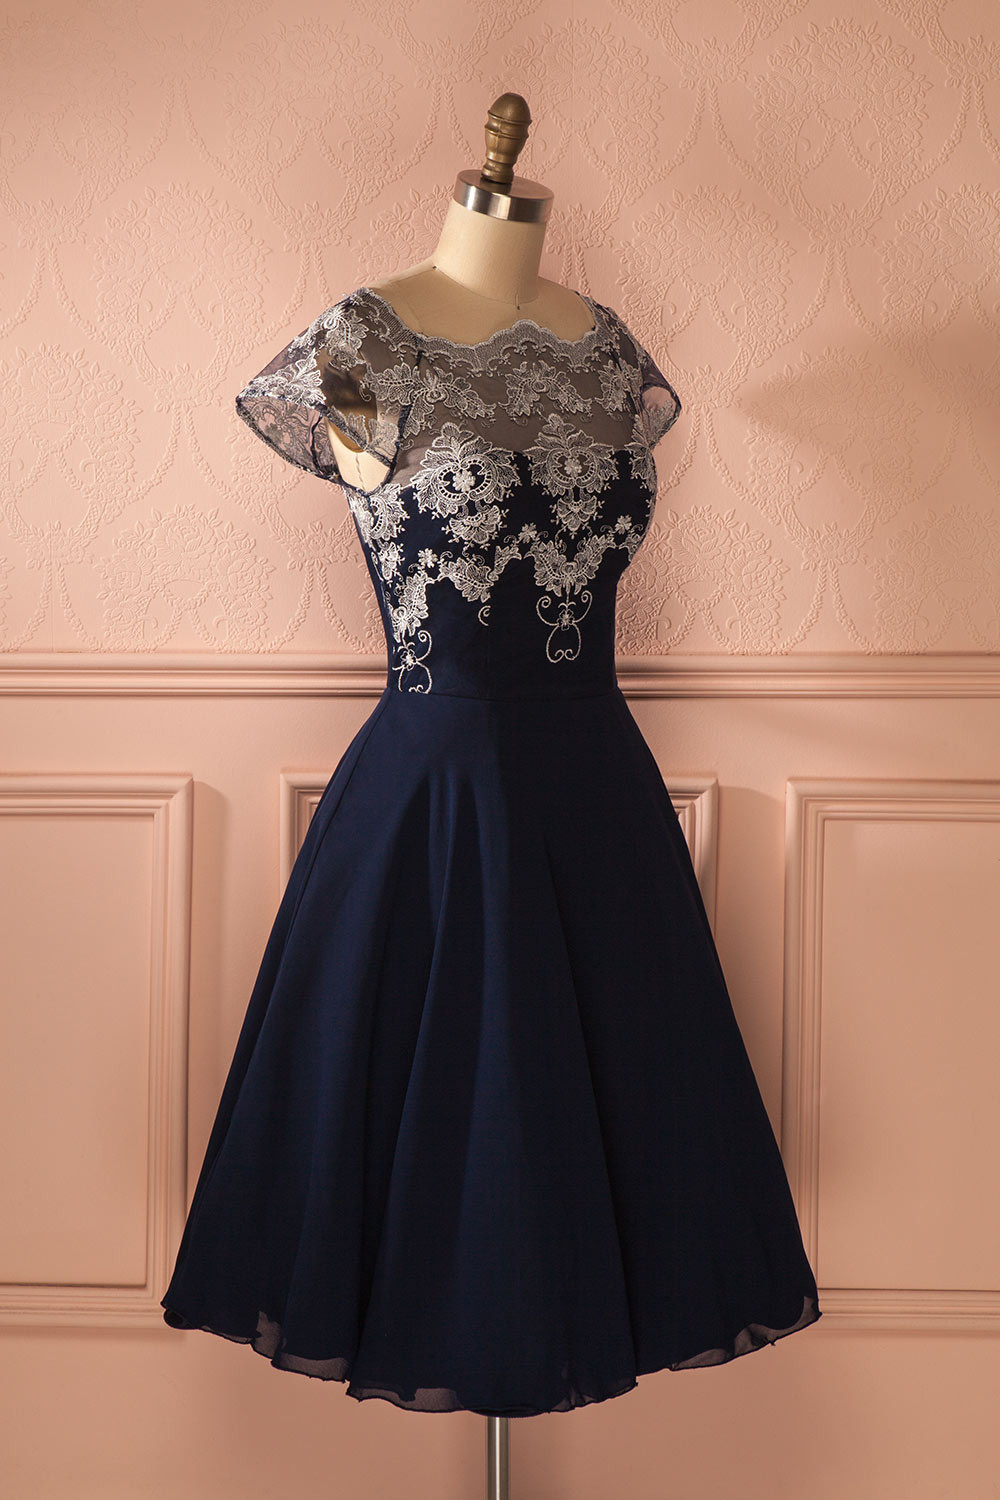 Navy Chiffon Homecoming dresses, Lace Homecoming Dresses, Cap Sleeve Homecoming Dresses, Homecoming Dresses, Juniors Homecoming Dresses, Cheap Homecoming Dresses, PD0739